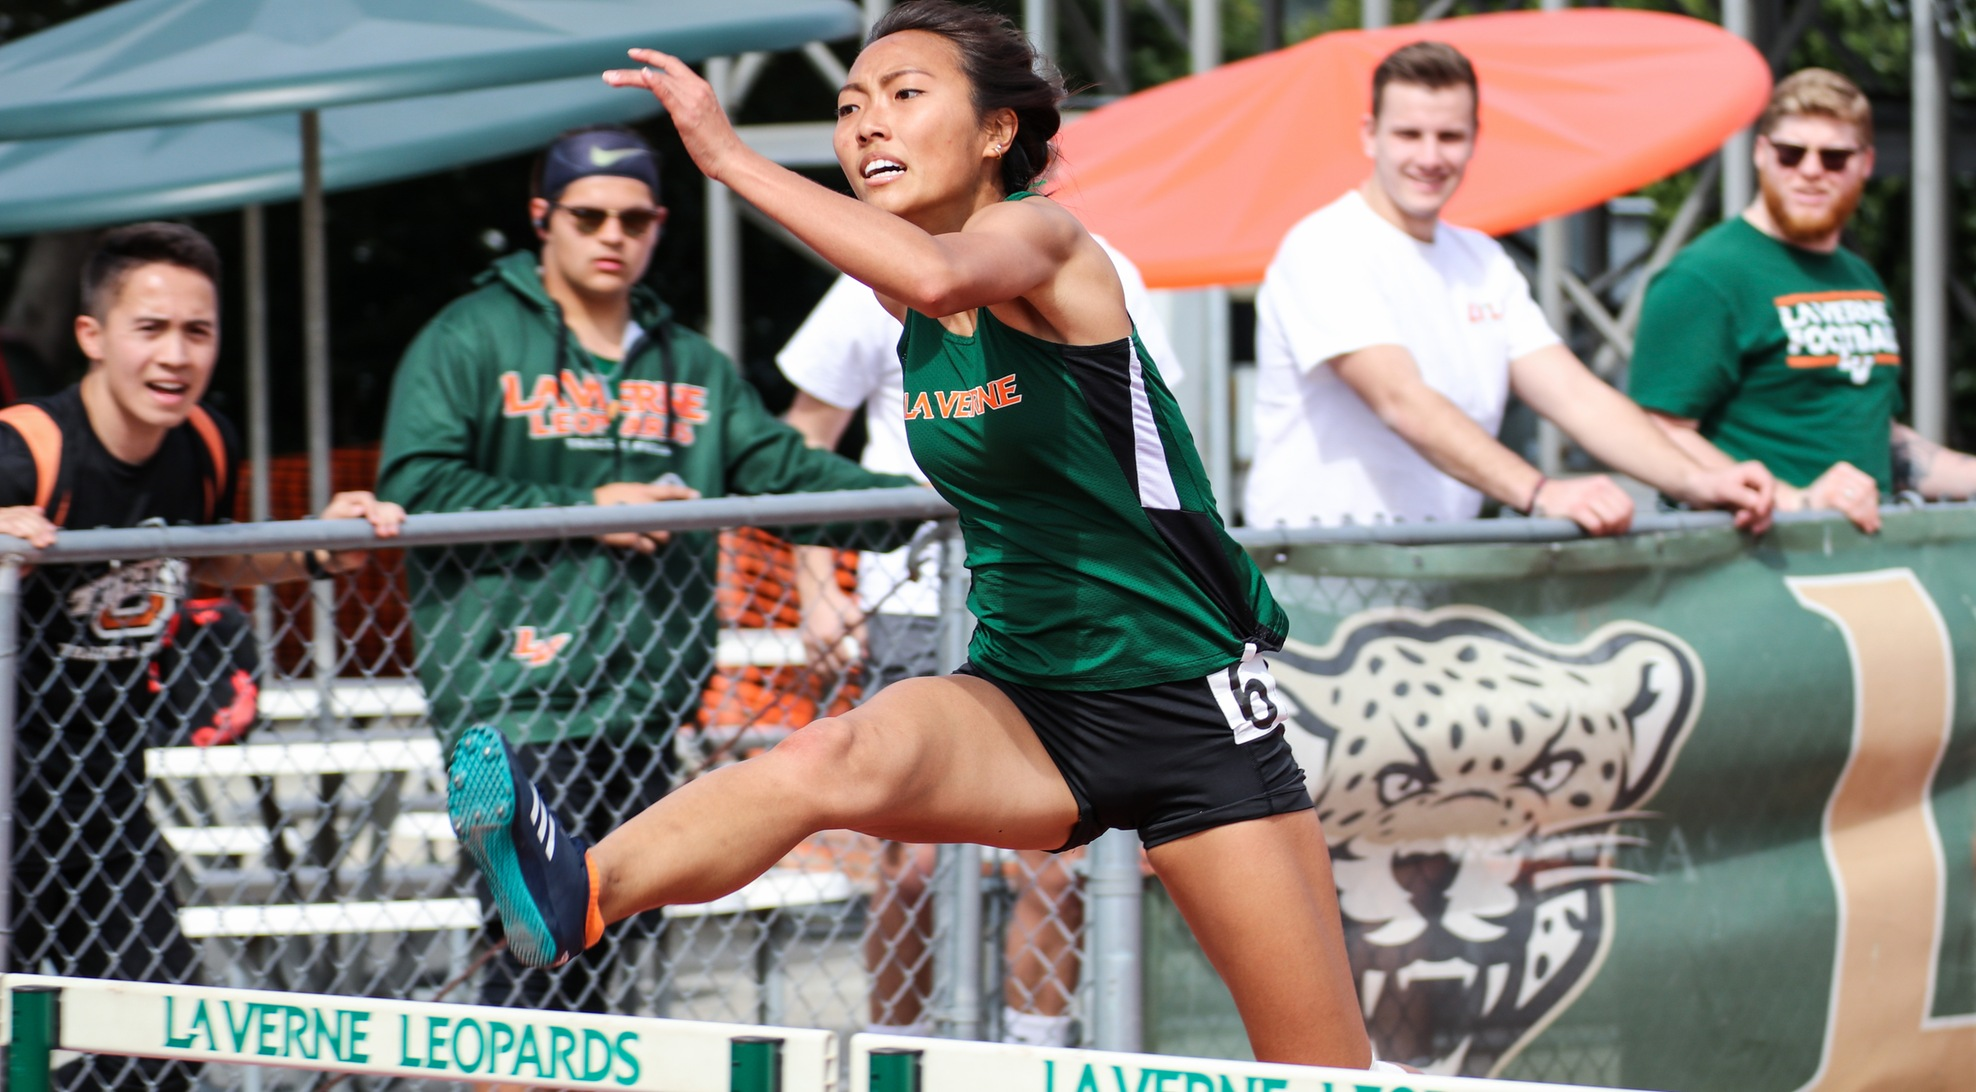 Lee Kim breaks record, wins three events at SCIAC Multi-Dual 3